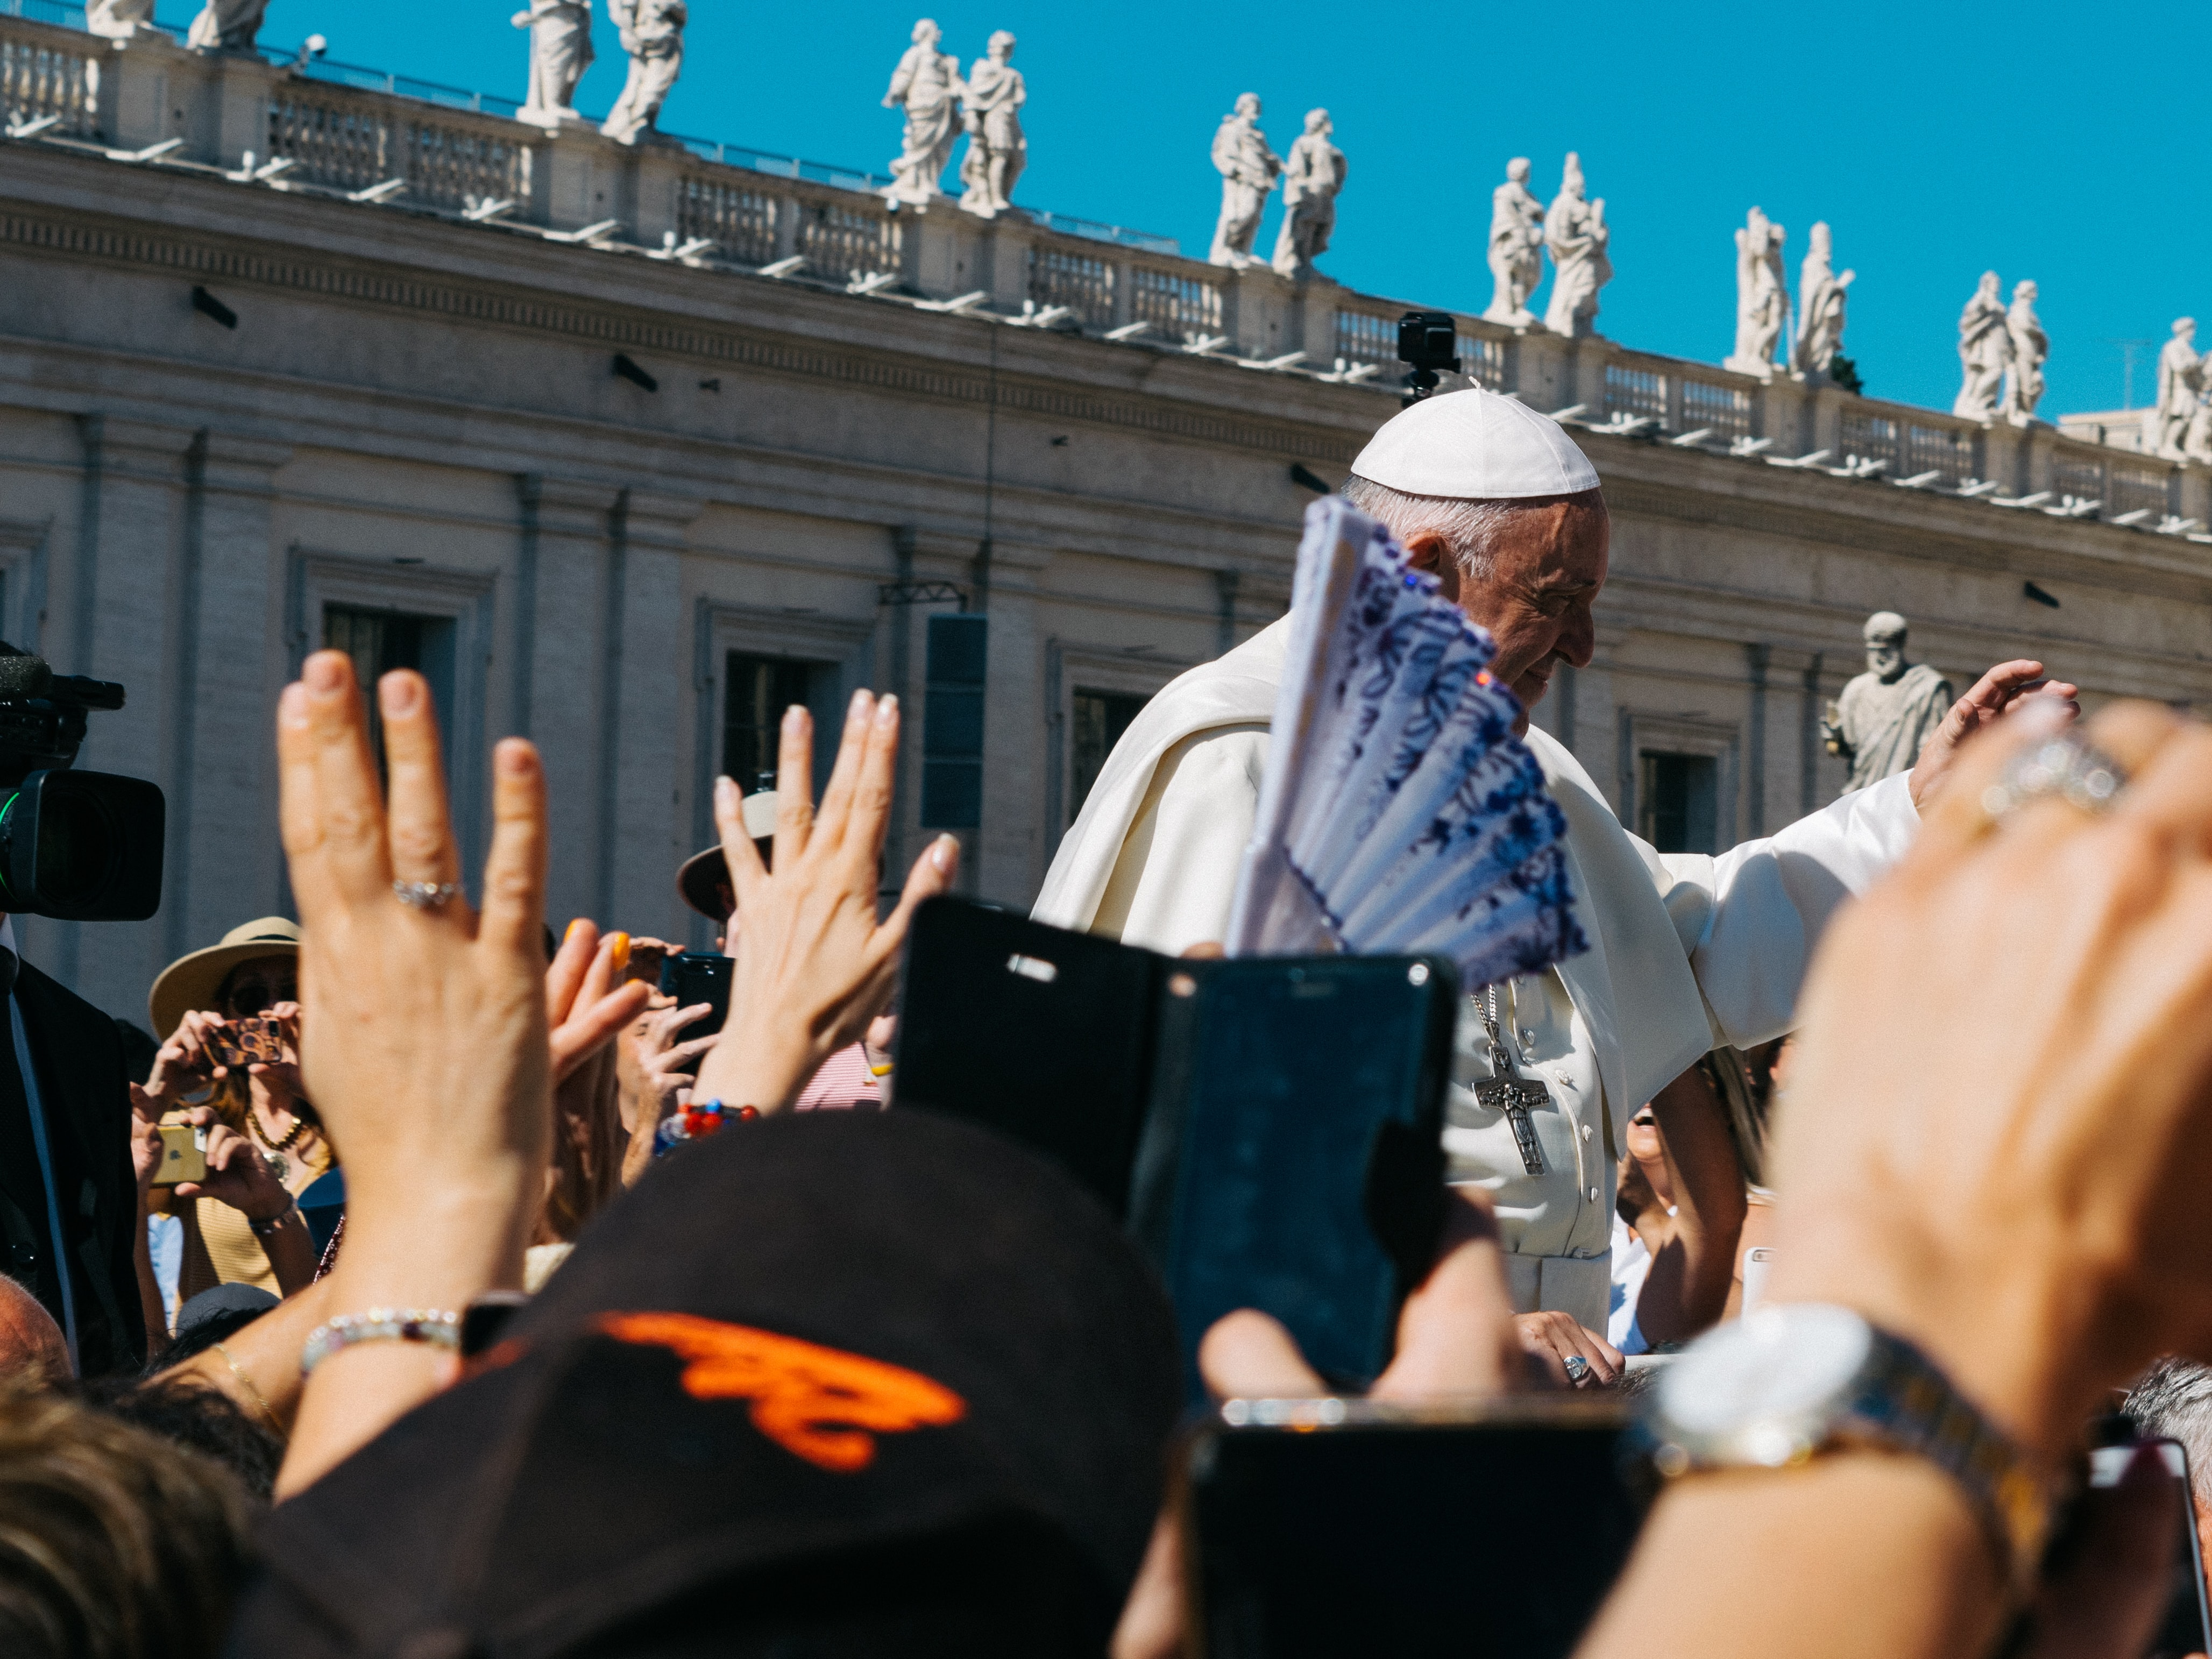 Pope-vatican-city-papal-audience